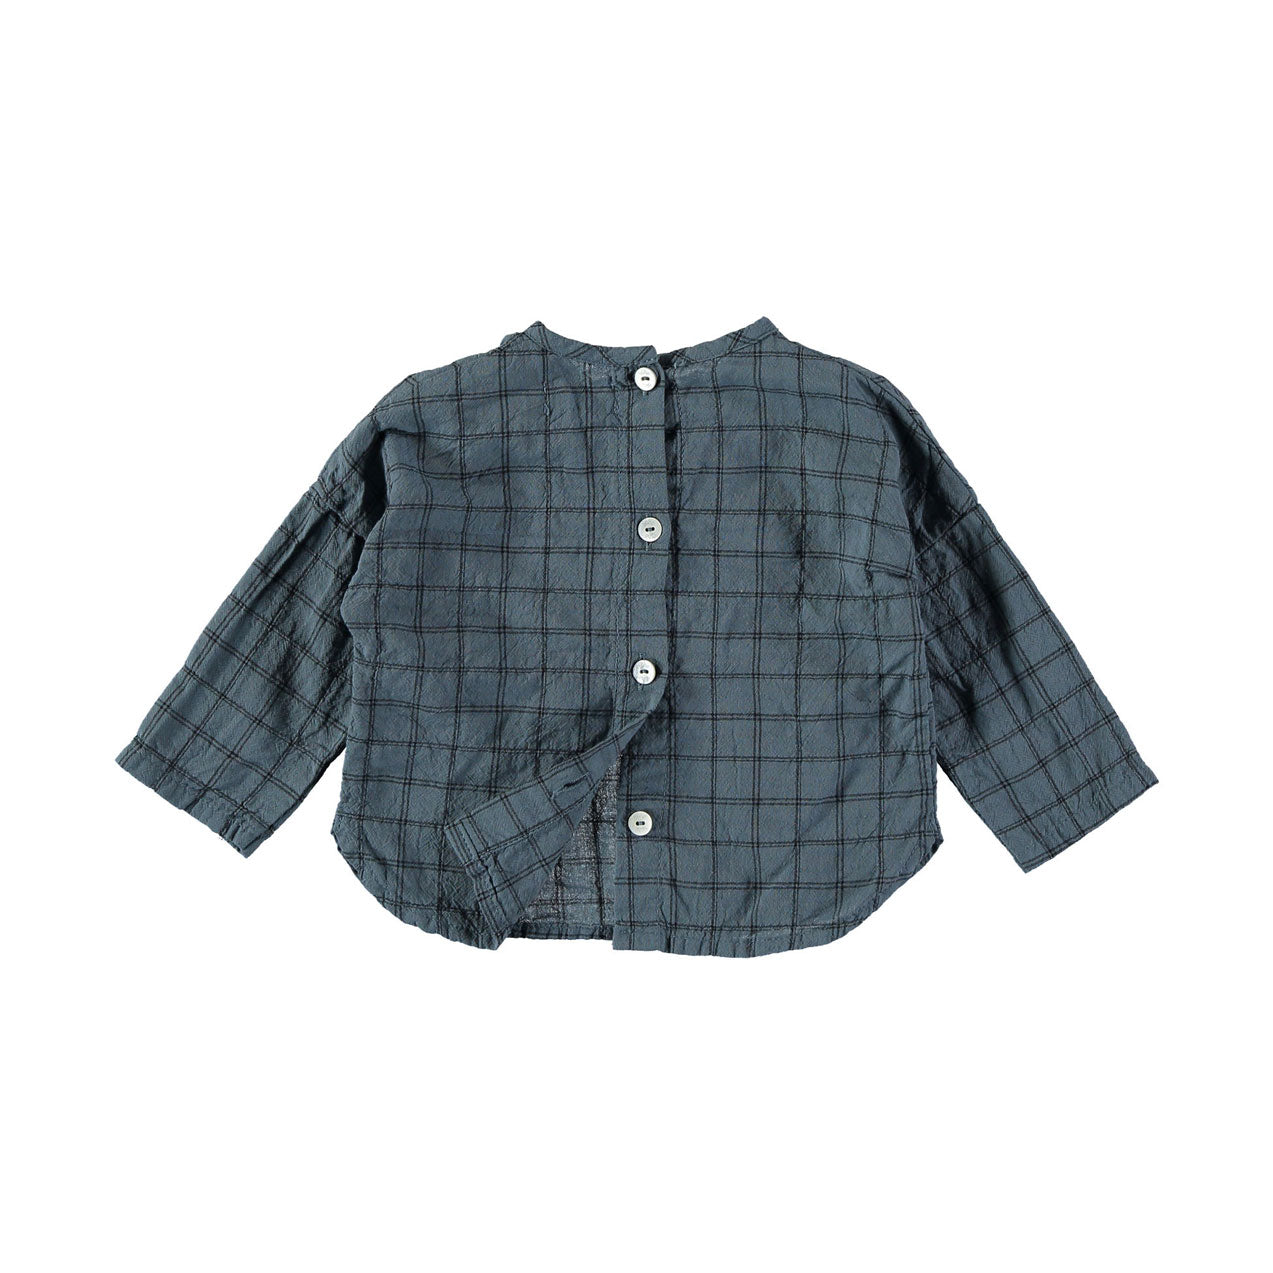 Buho Ocean Blue Mateo Check Pockets Shirt